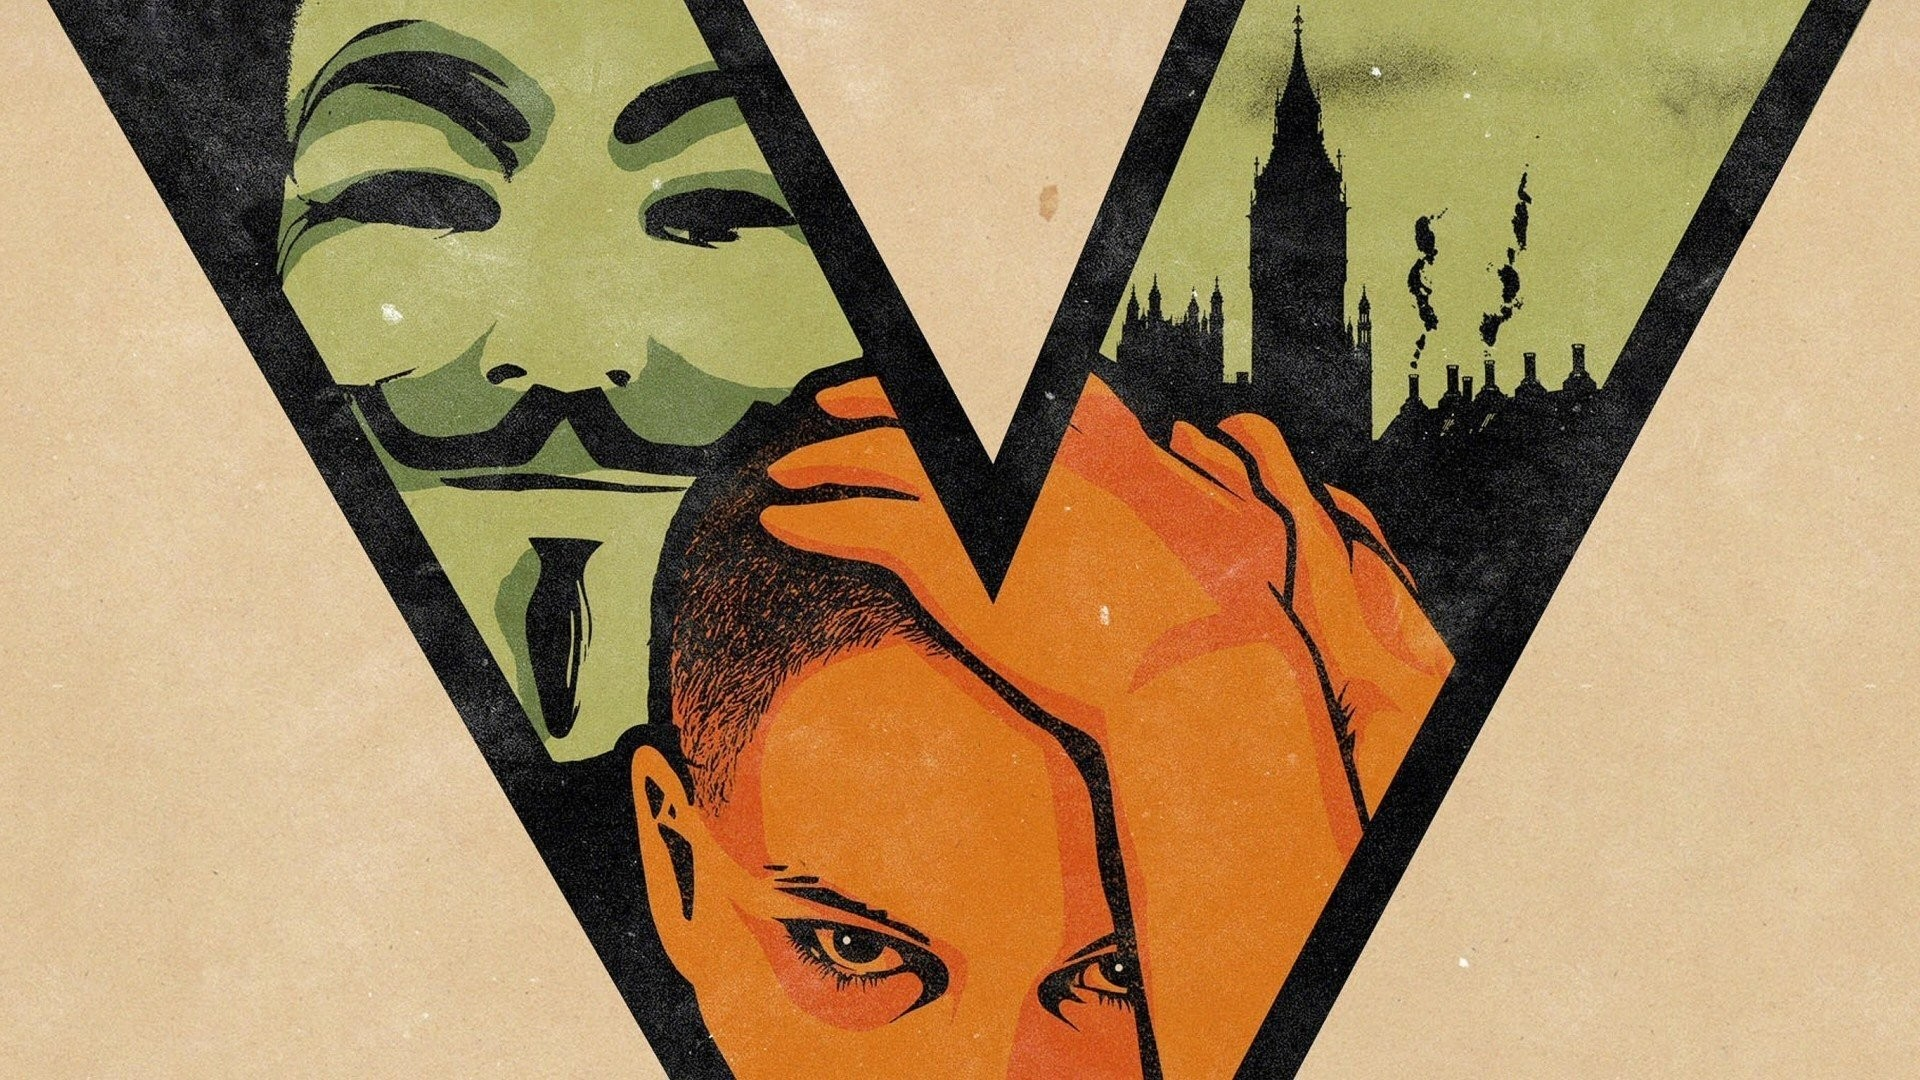 … v for vendetta wallpapers page 3 walldevil …